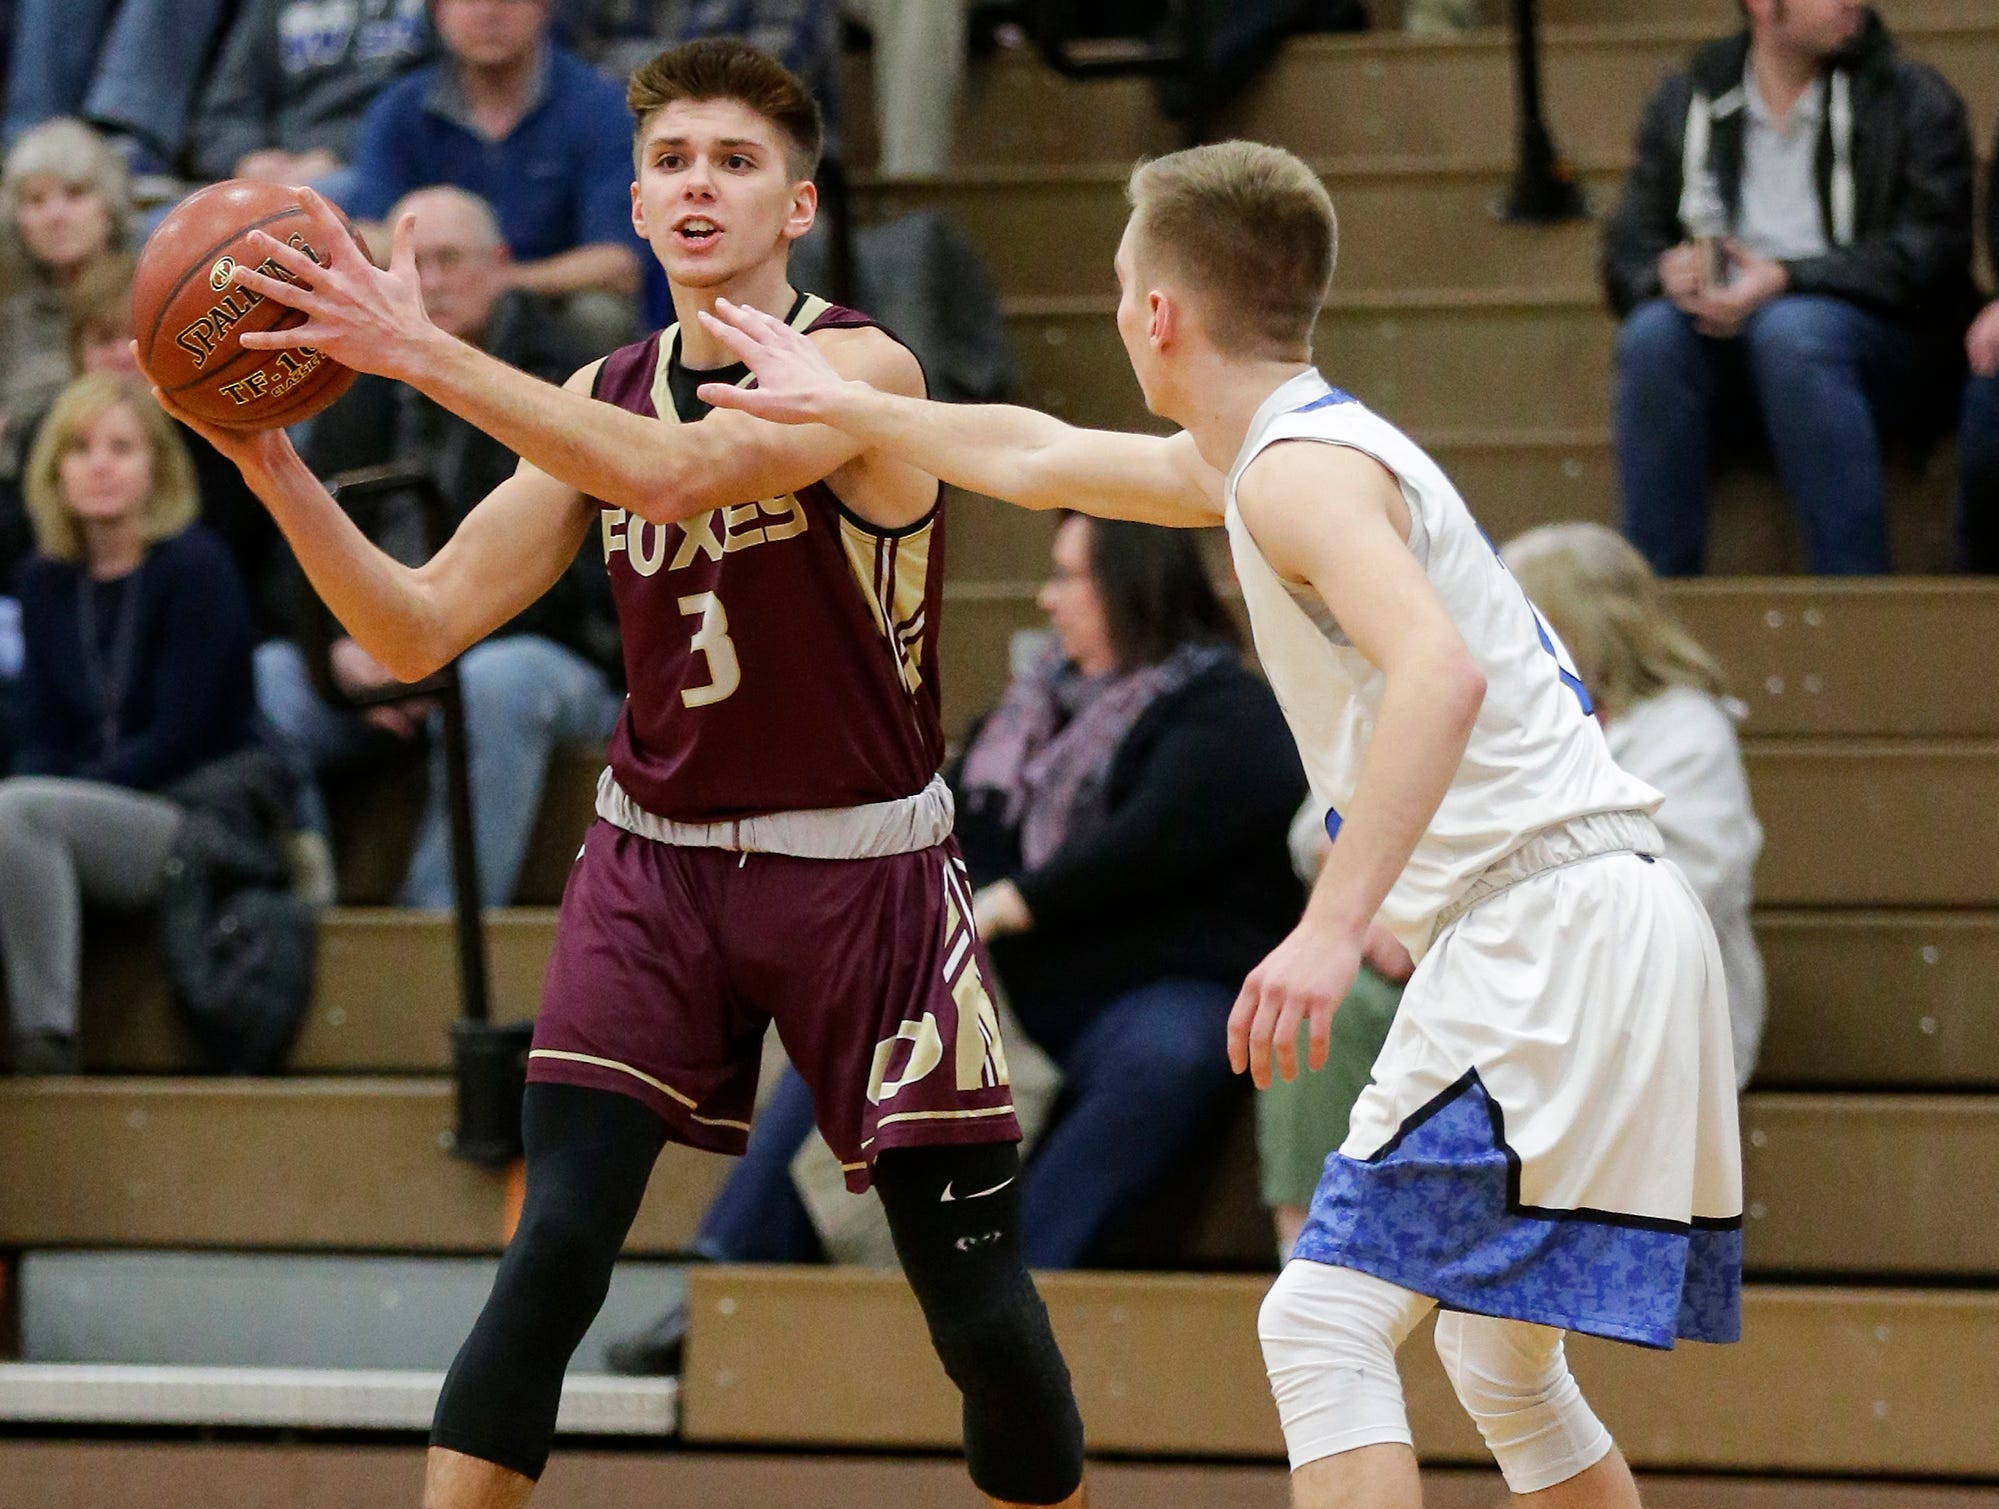 Omro High School boys basketball's Austin Bauer (3) looks to pass against Winnebago Lutheran Academy's Ryan Reigand (2) during their game Friday, February 1, 2019 in Fond du Lac. Doug Raflik/USA TODAY NETWORK-Wisconsin